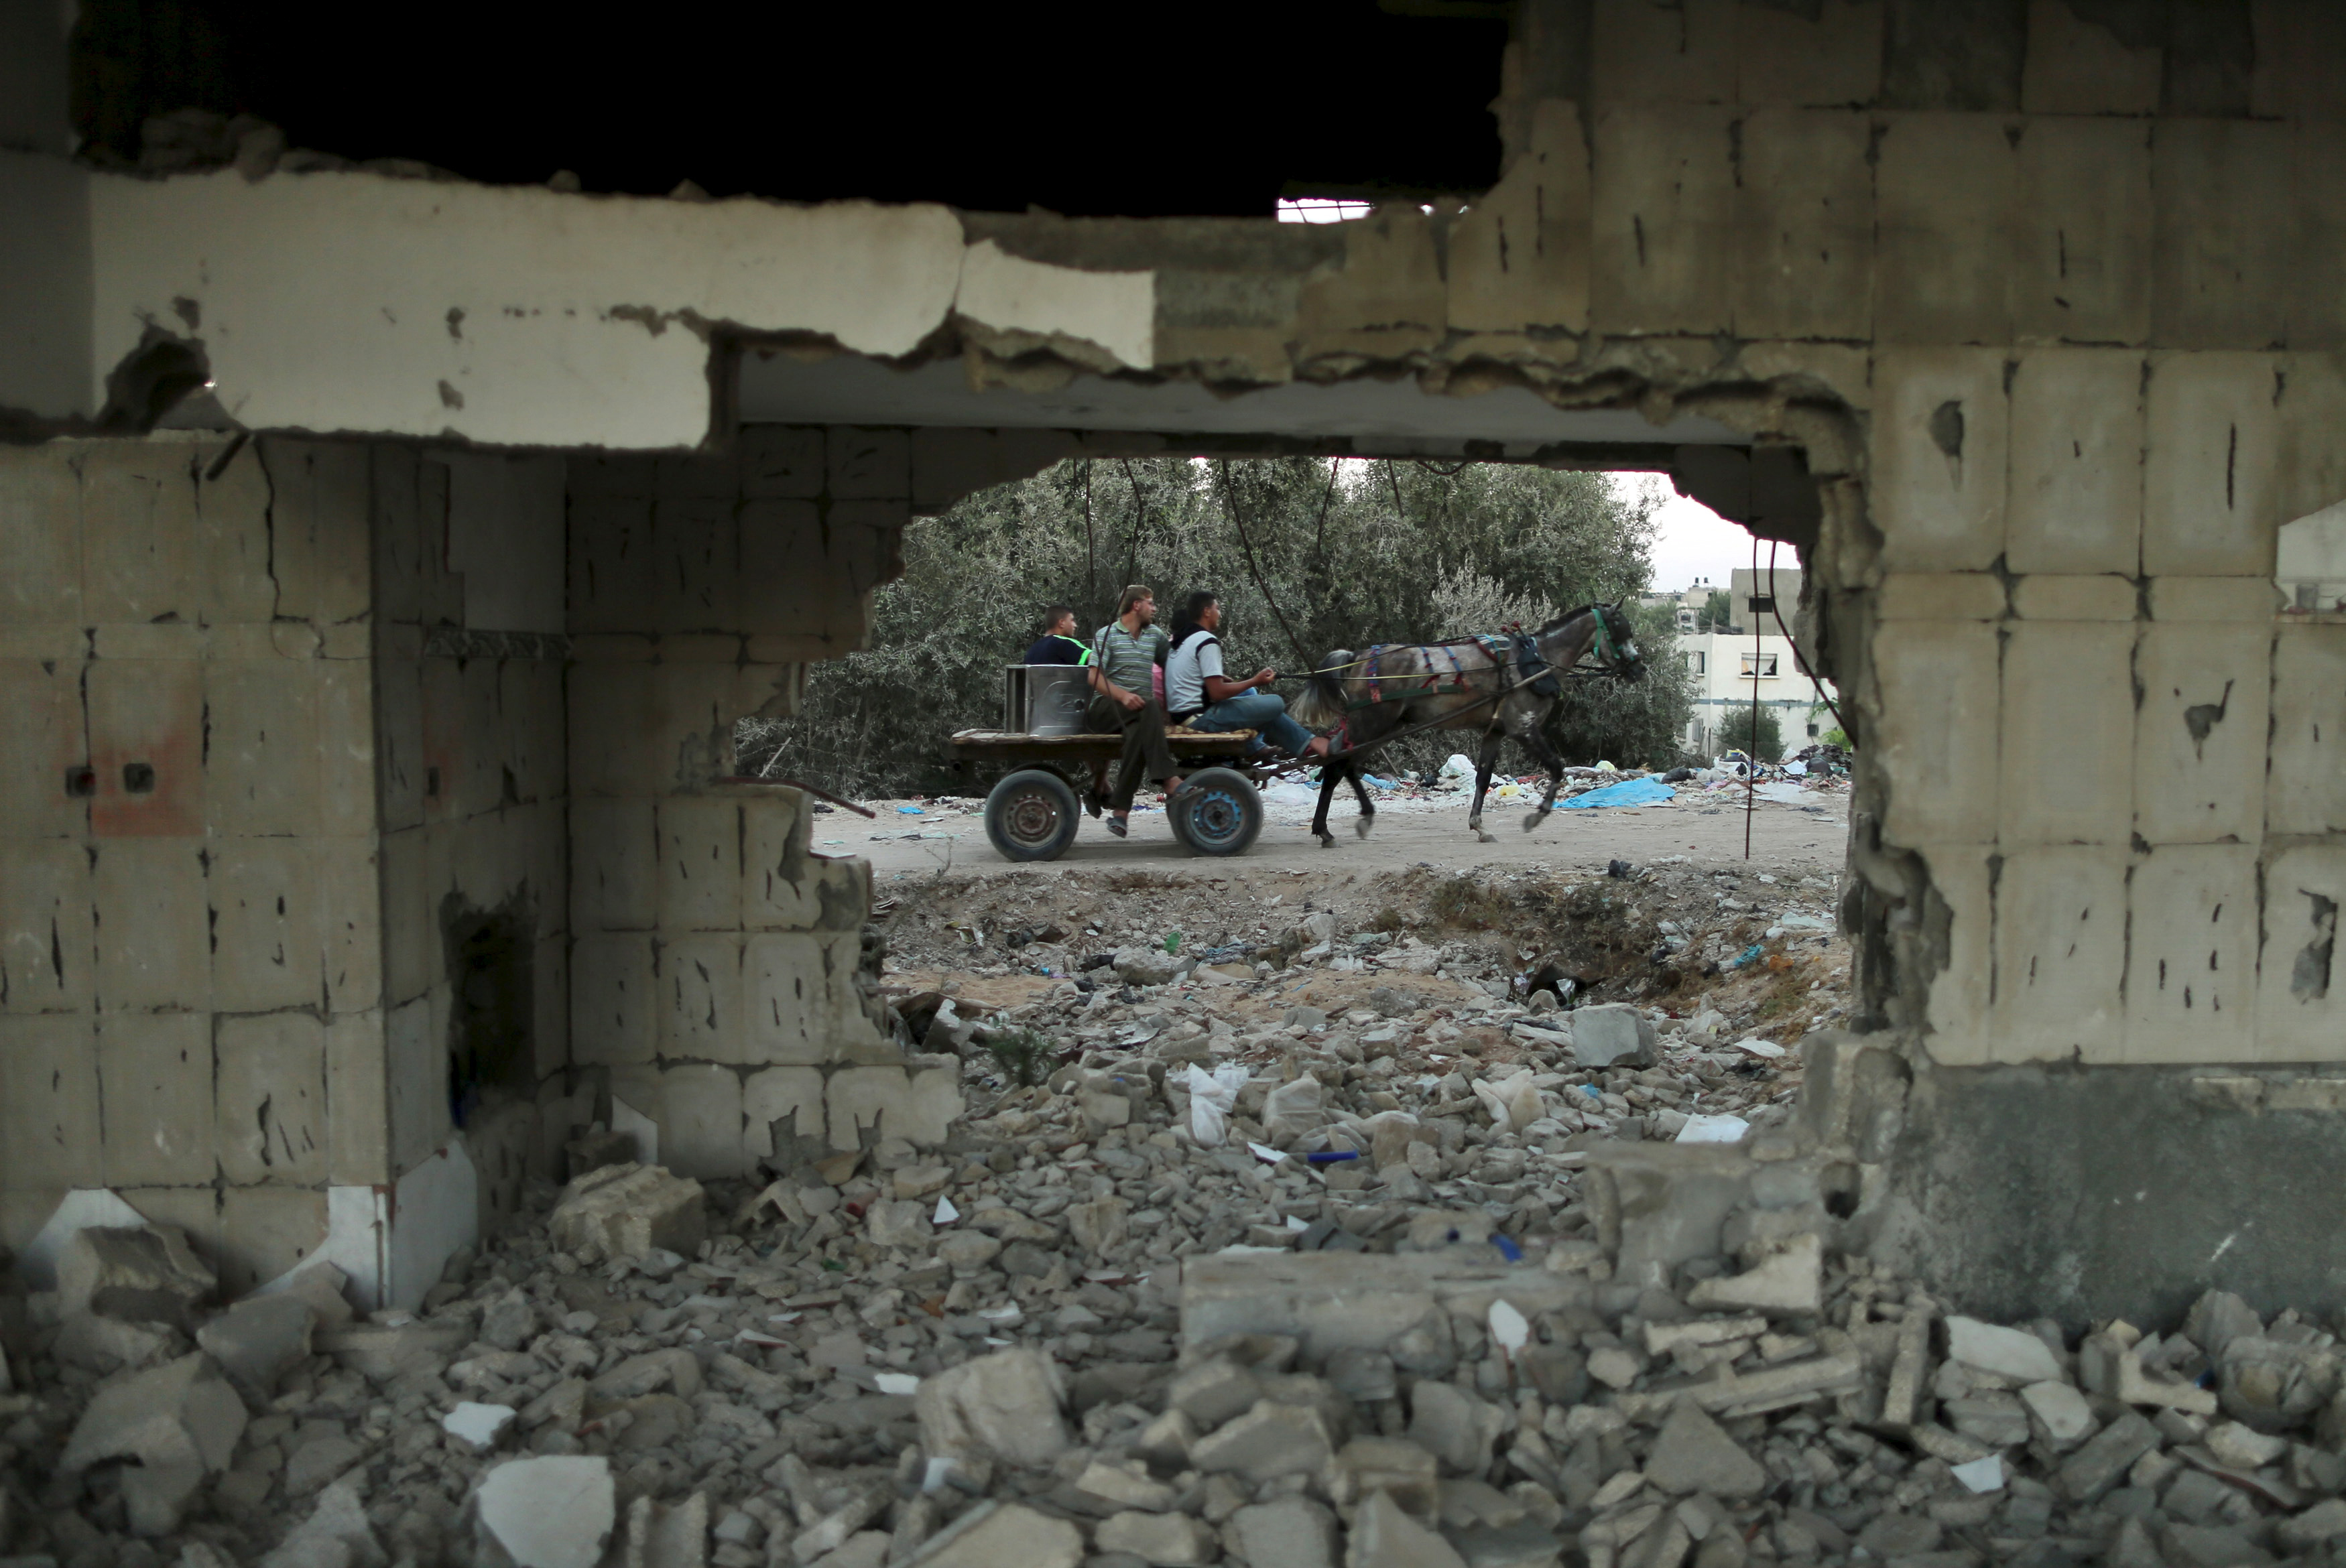 Palestinians ride a horse cart past a house, that witnesses said was destroyed by Israeli shelling during a 50-day war last summer, in Beit Lahiya town in the northern Gaza Strip on Aug. 25, 2015.